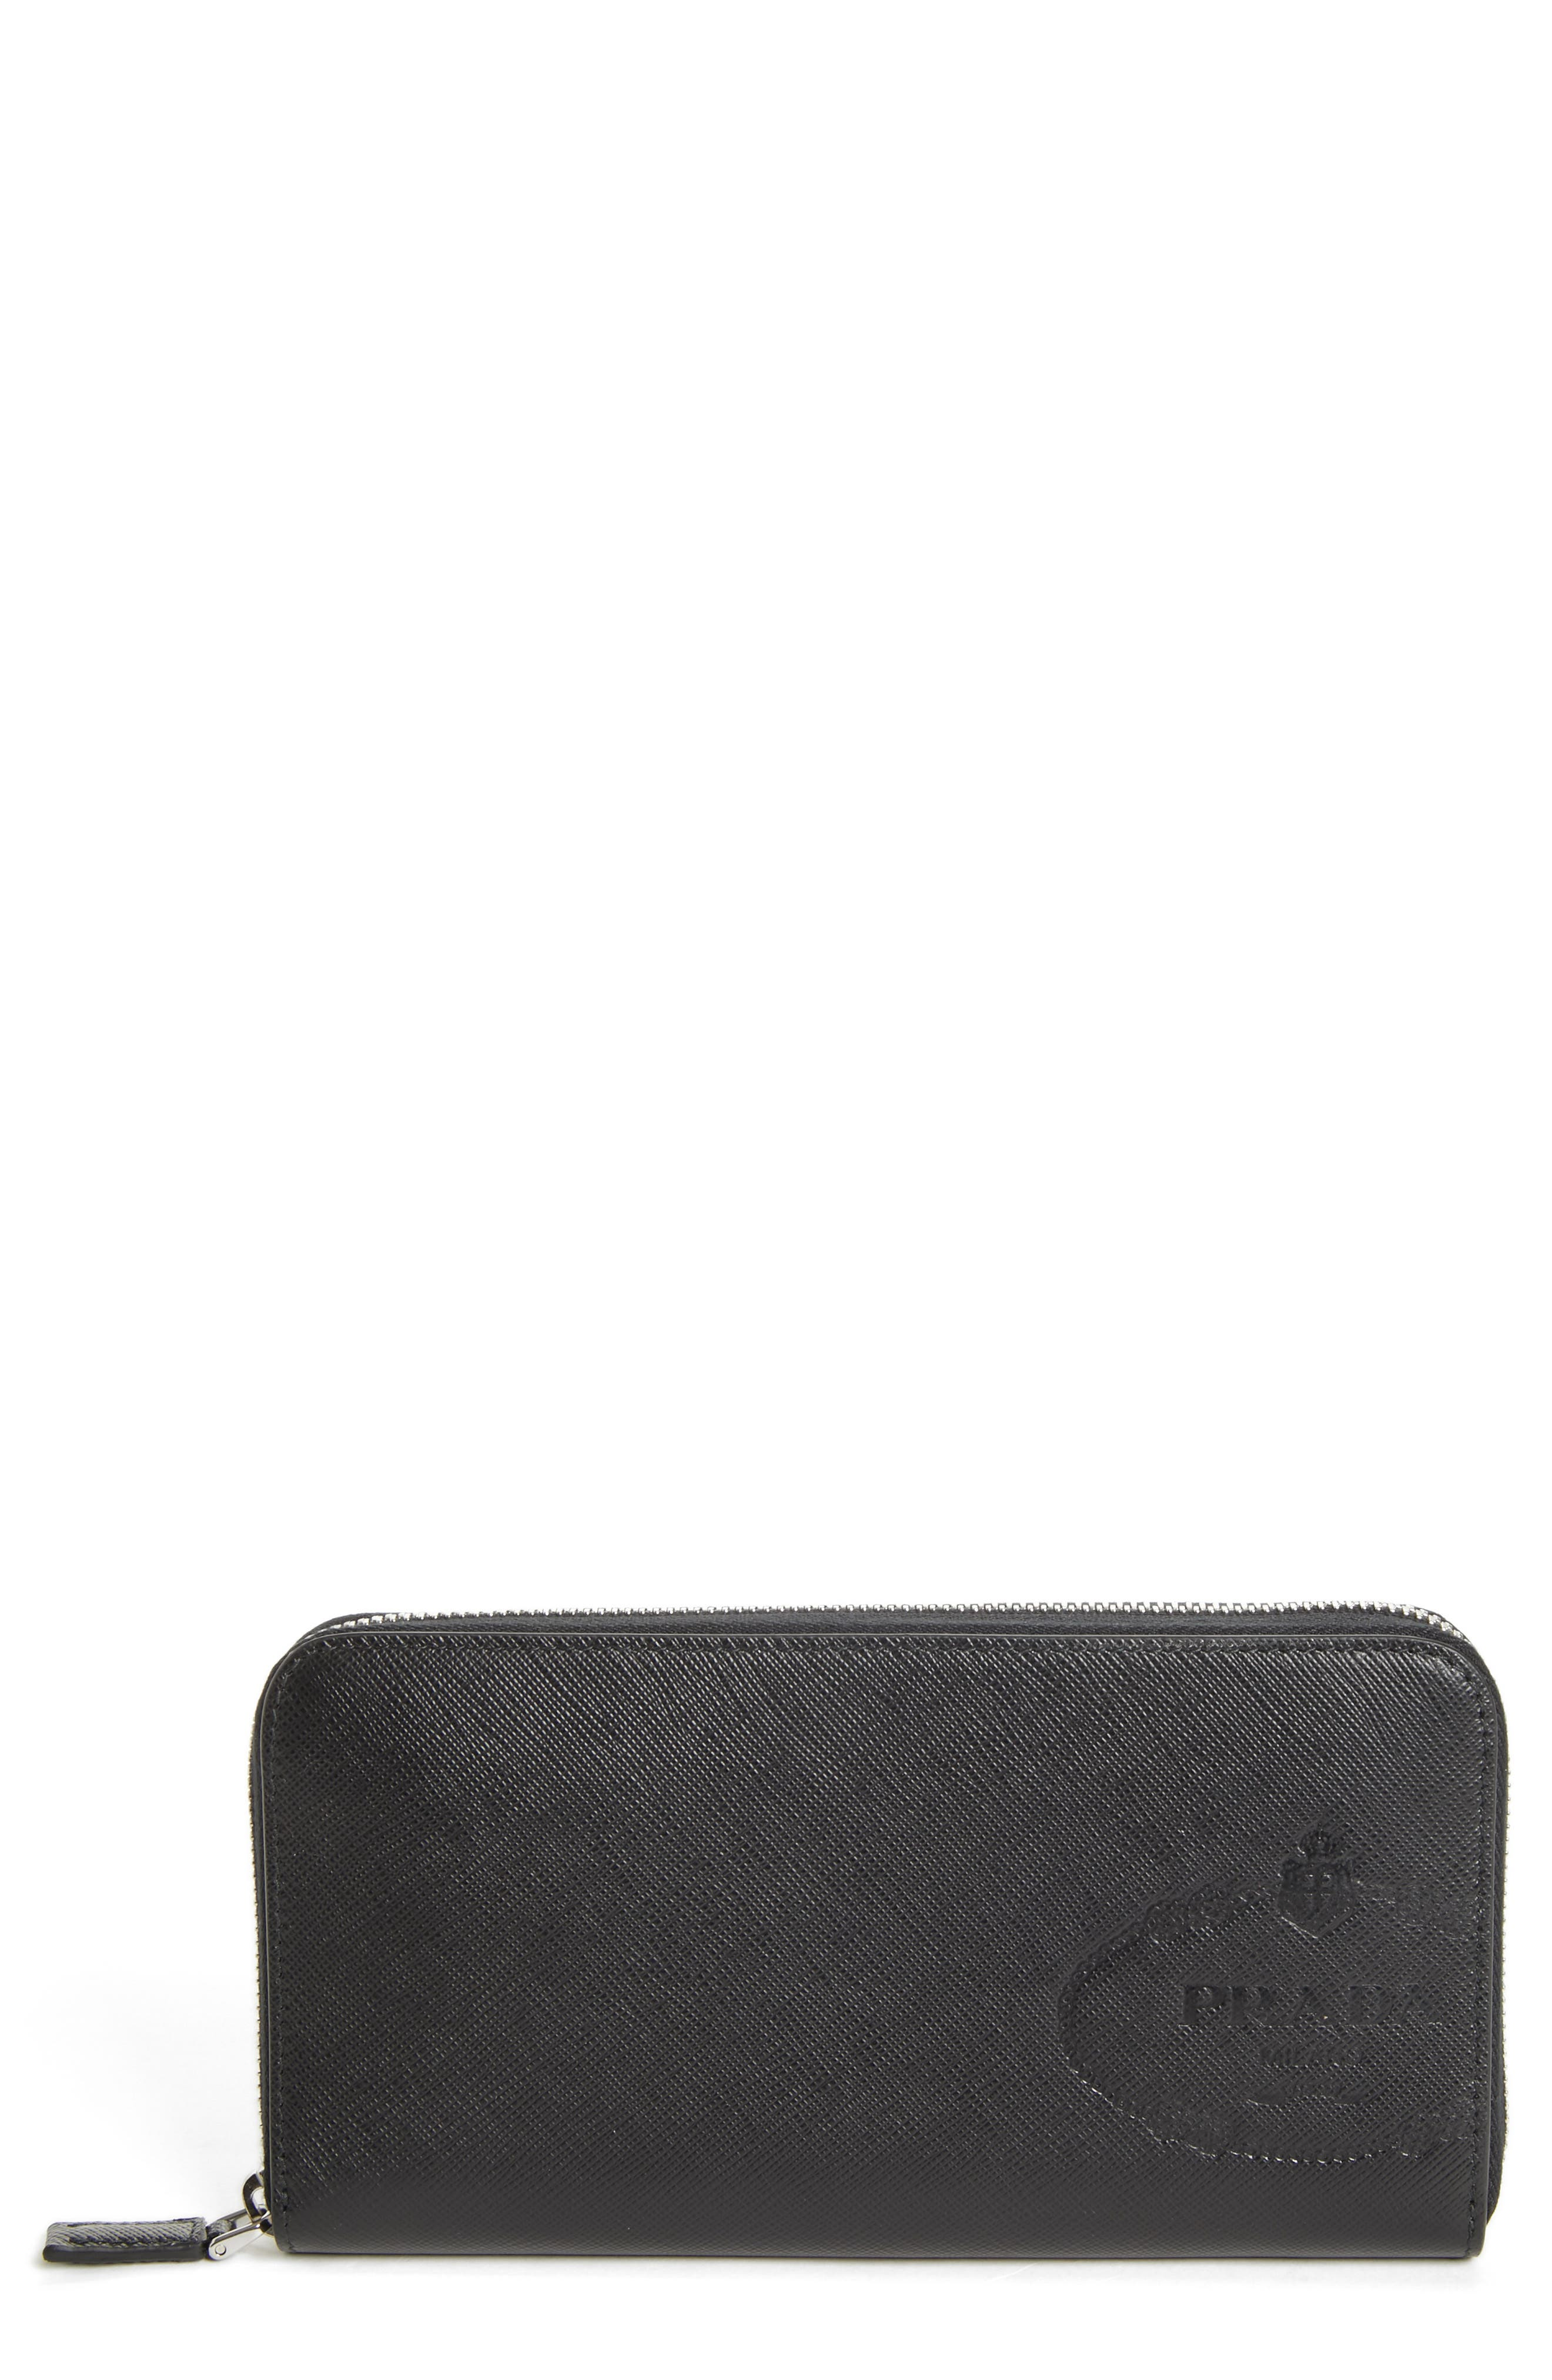 Long Zip Around Saffiano Leather Wallet,                             Main thumbnail 1, color,                             BLACK